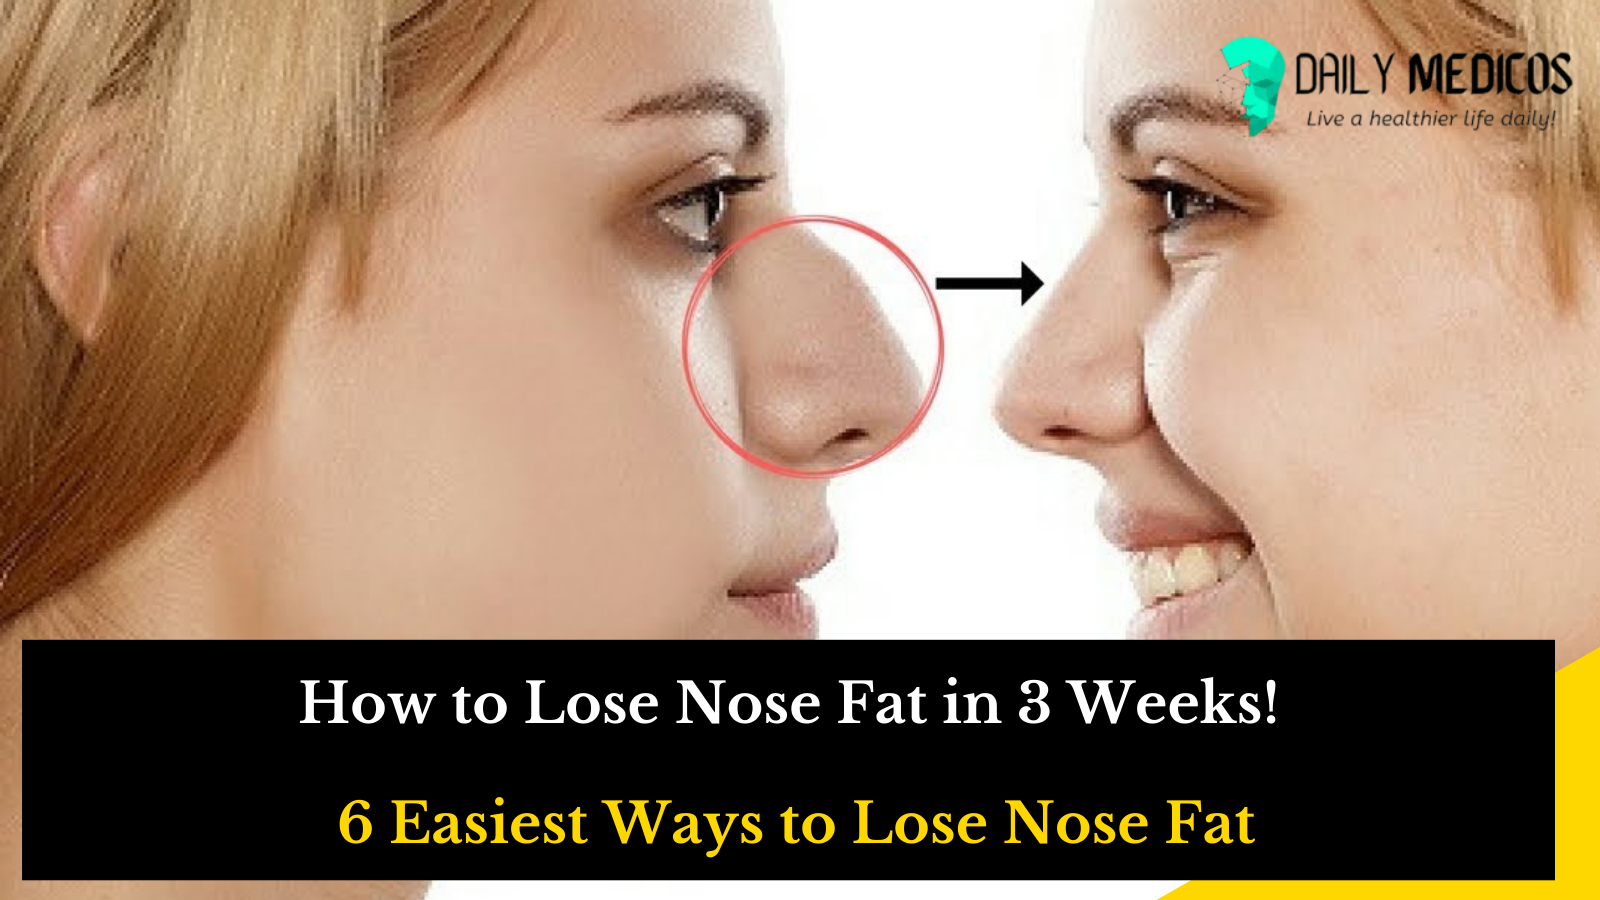 How To Lose Nose Fat In 10 Weeks! 10 Easiest Ways To Lose Nose Fat